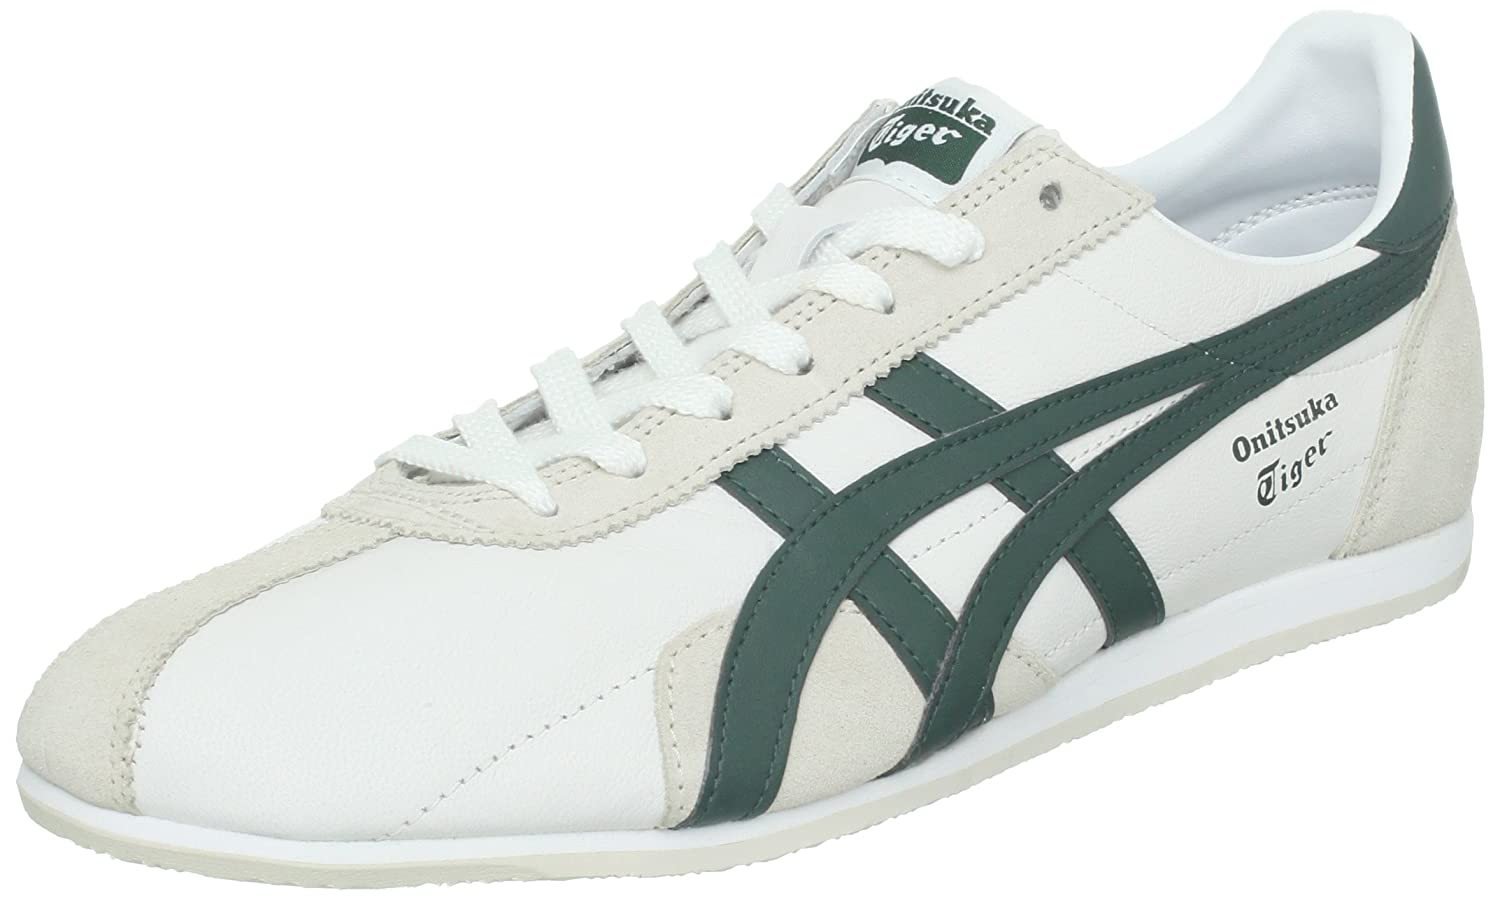 huge discount 0aa73 0363f ASICS - Mens Onitsuka Tiger Runspark Shoes In White/Dark ...